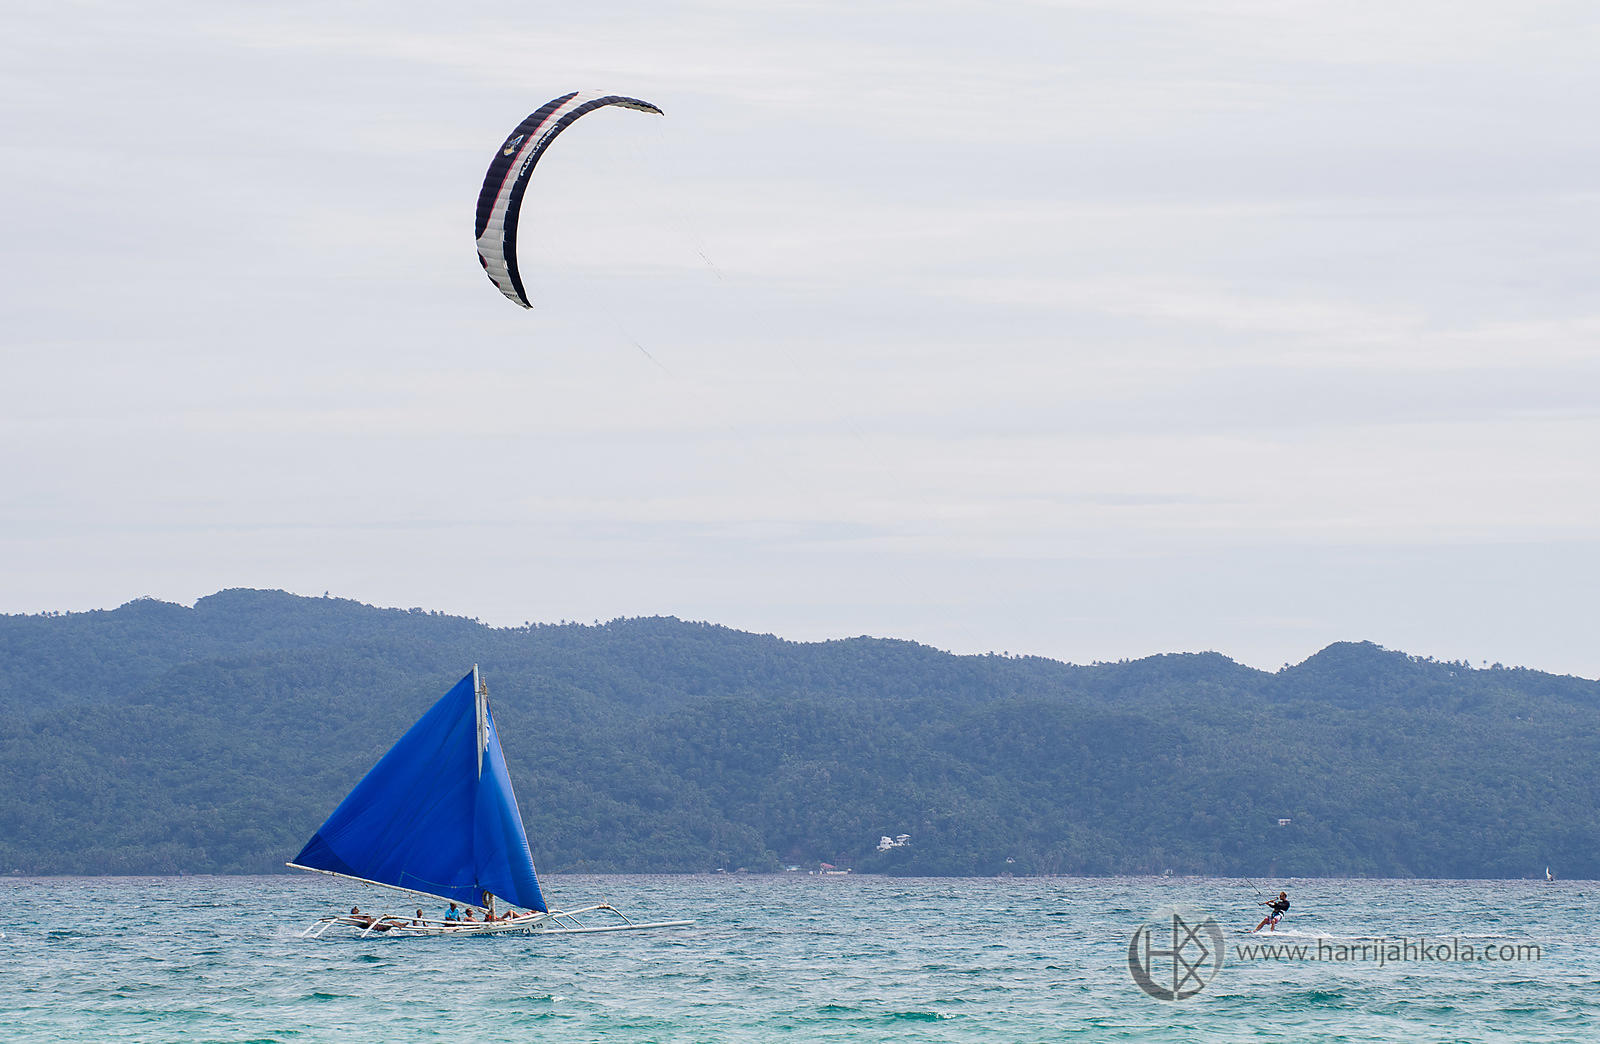 Philippines - Boracay (Paraw and Kitesurfer)